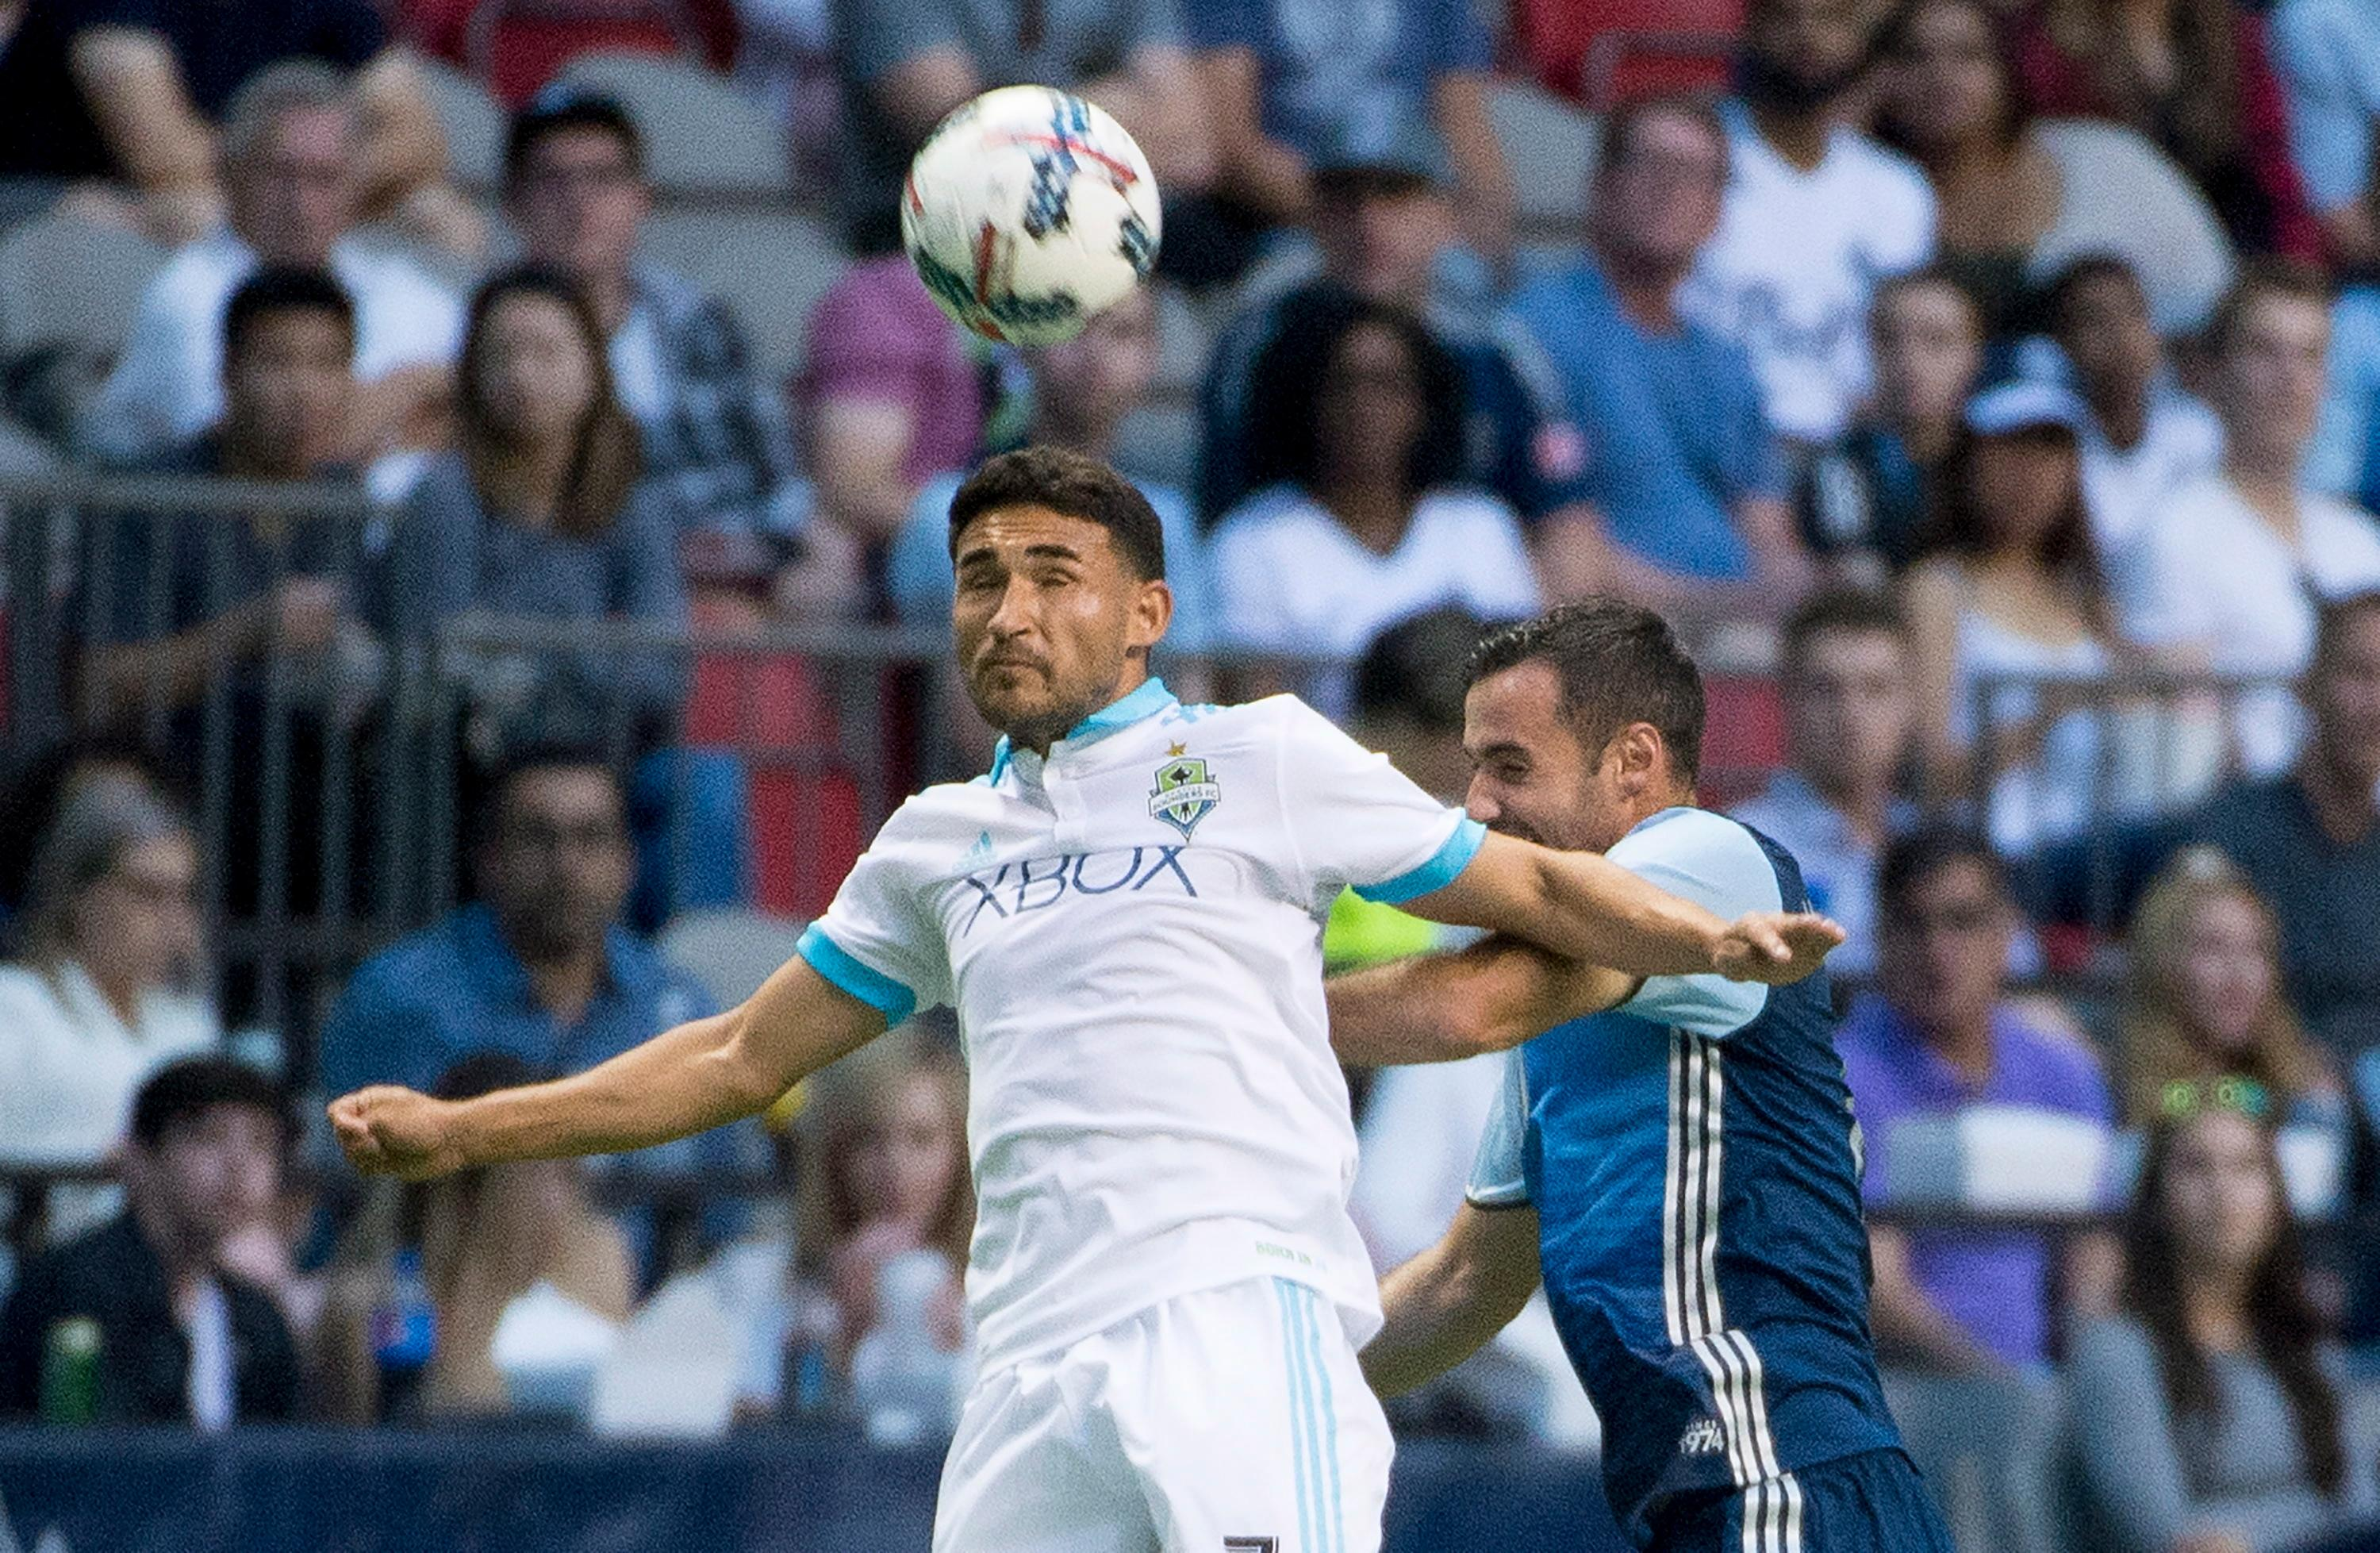 Seattle Sounders midfielder Cristian Roldan heads the ball next to Vancouver Whitecaps midfielder Andrew Jacobson (8) during the first half of an MLS soccer match Wednesday, Aug. 23, 2017, in Vancouver, British Columbia. (Jonathan Hayward/The Canadian Press via AP)